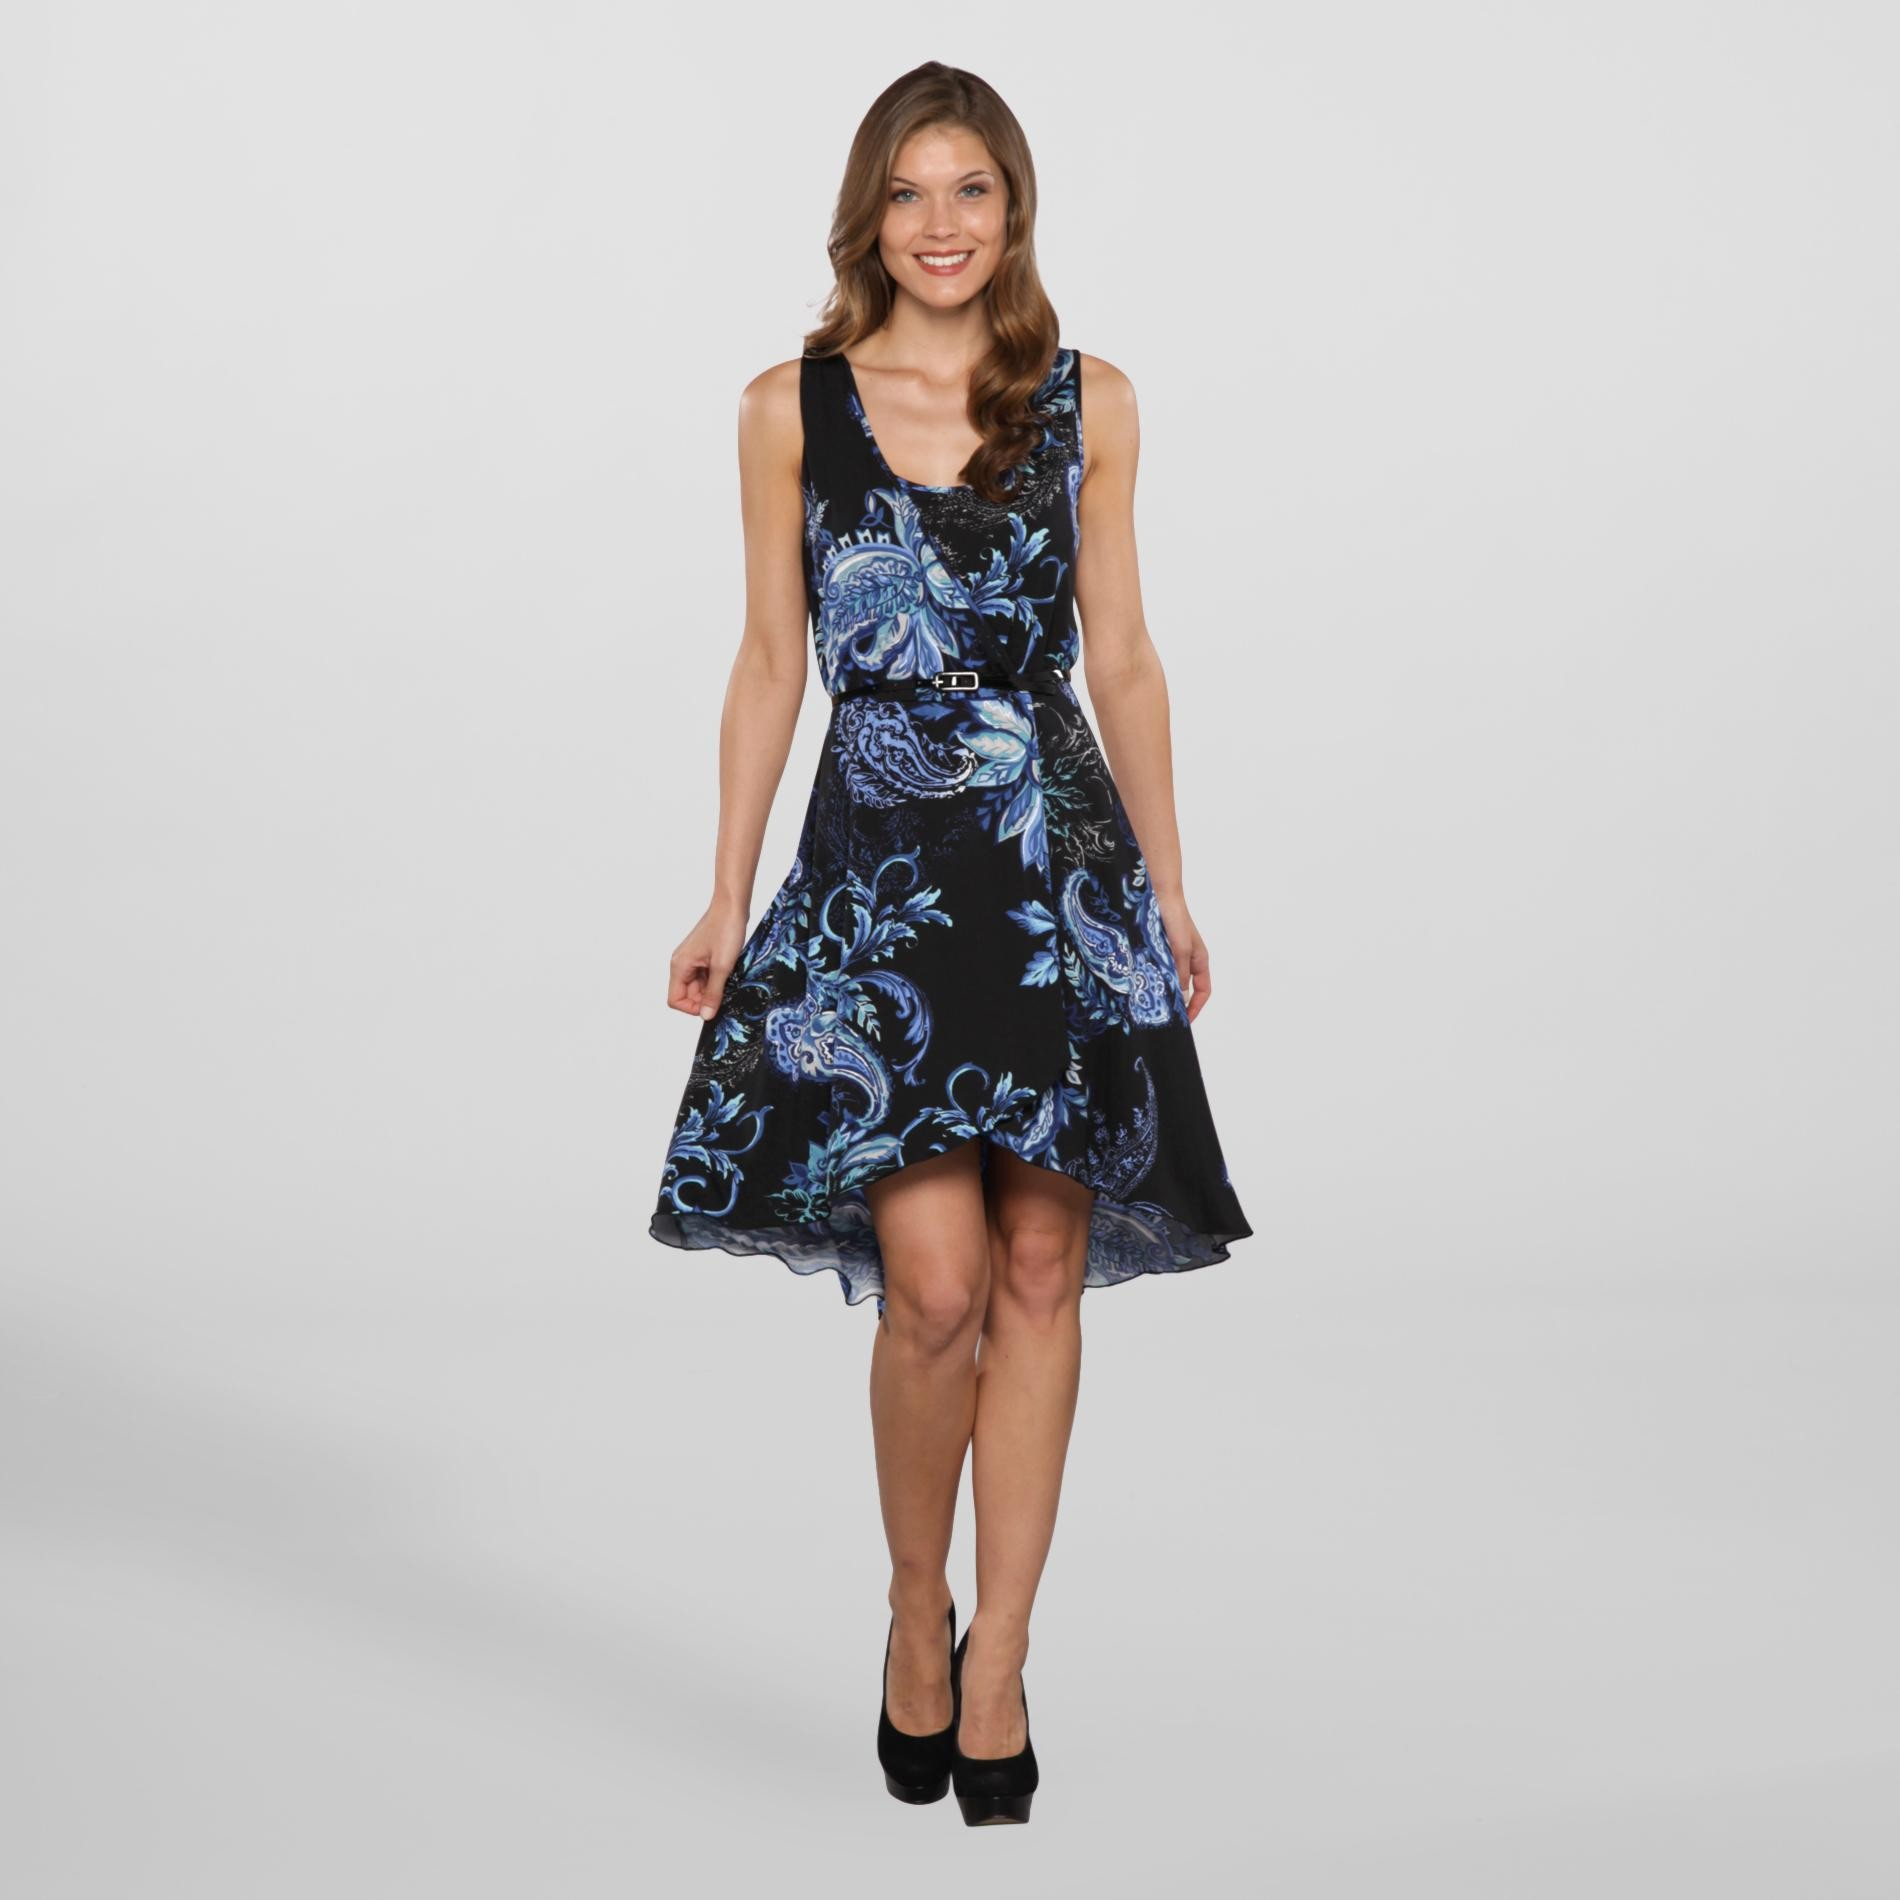 Corey P. Women's Belted High-Low Dress - Floral at Sears.com